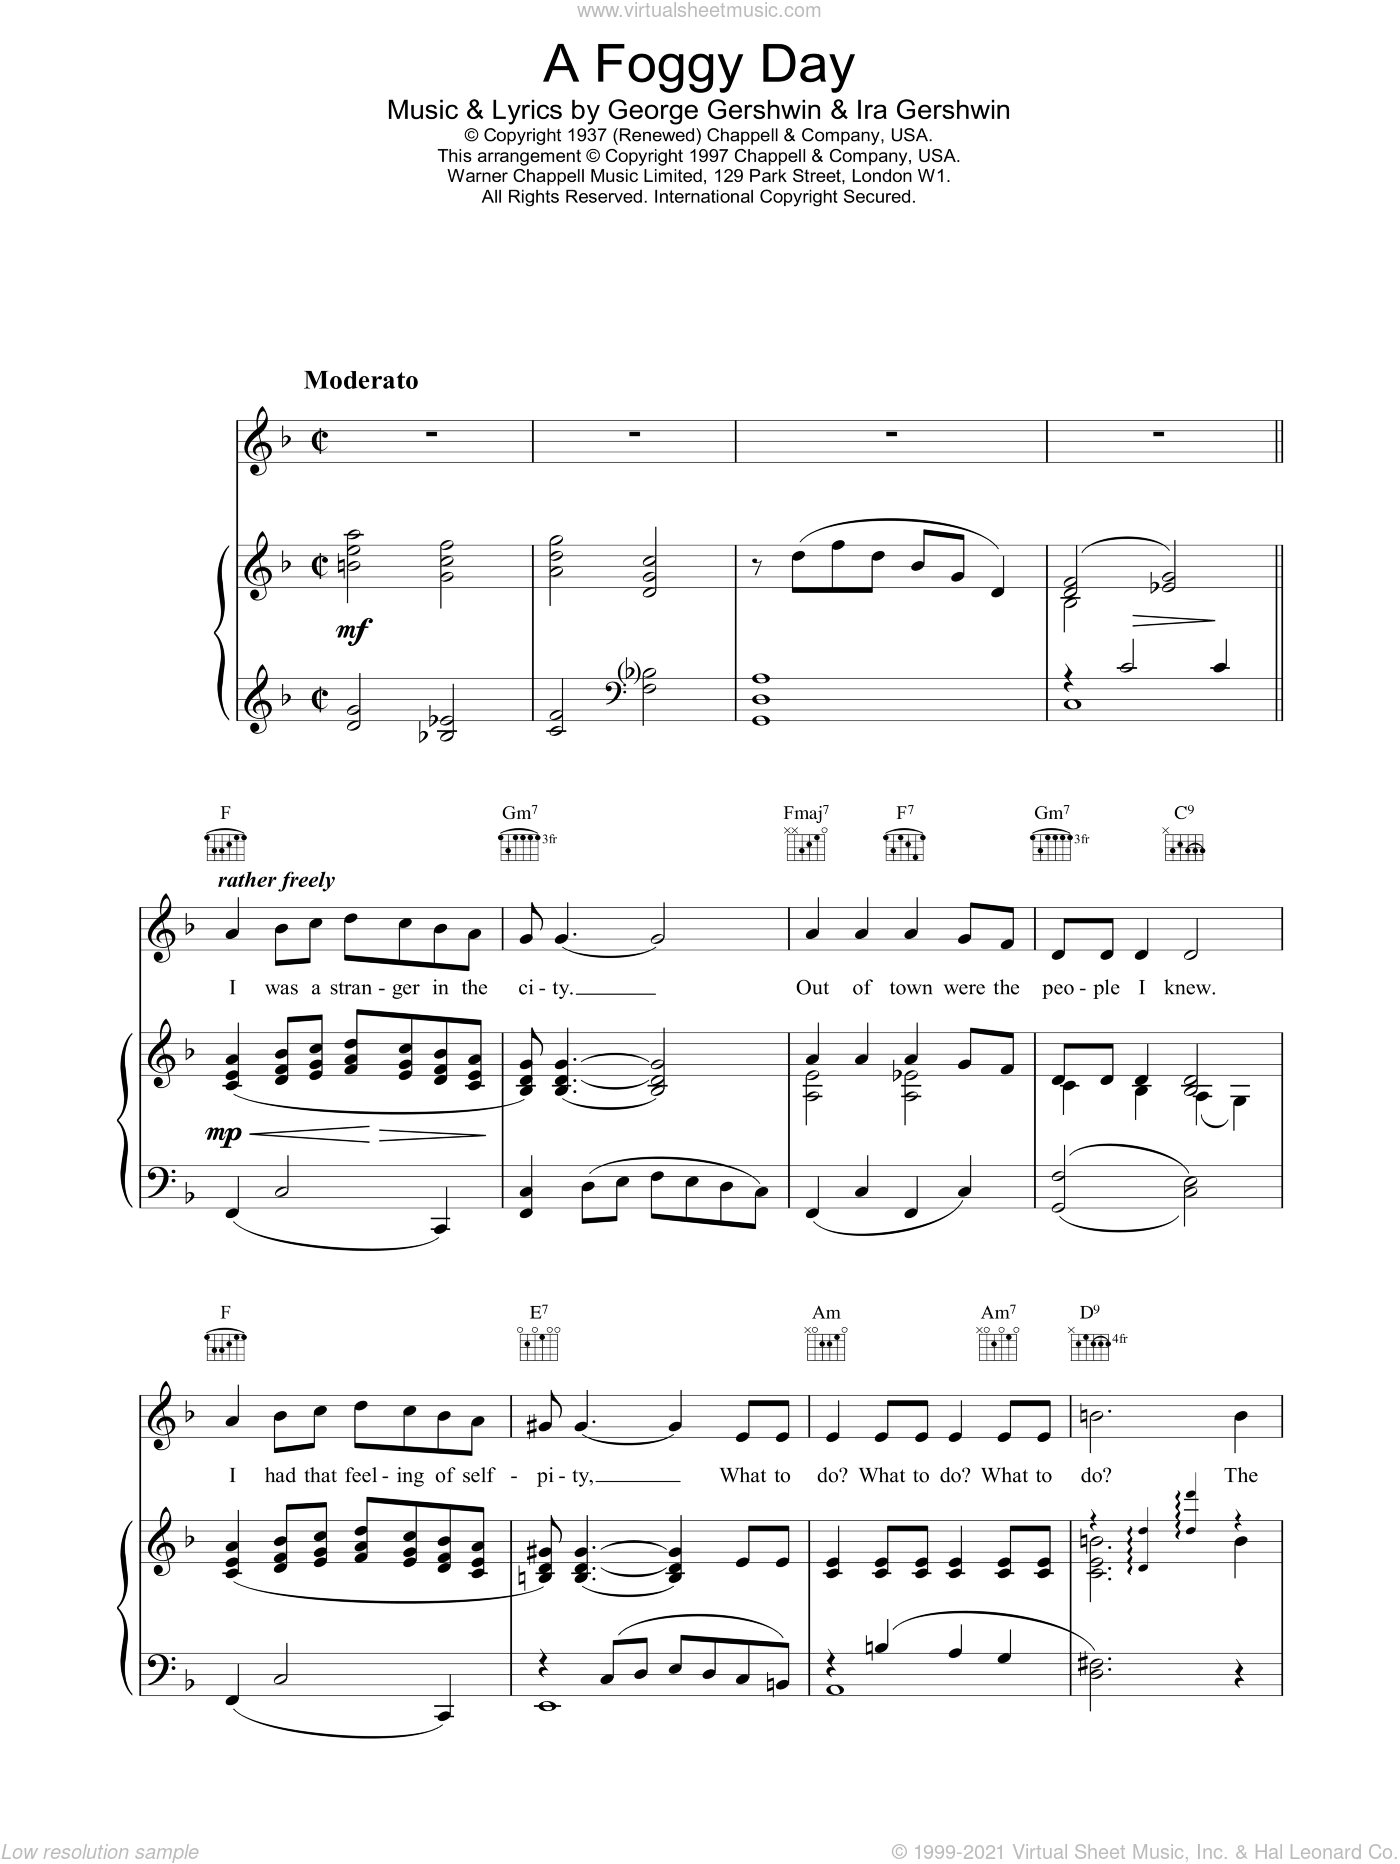 A Foggy Day (In London Town) sheet music for voice, piano or guitar by Frank Sinatra and George Gershwin, intermediate